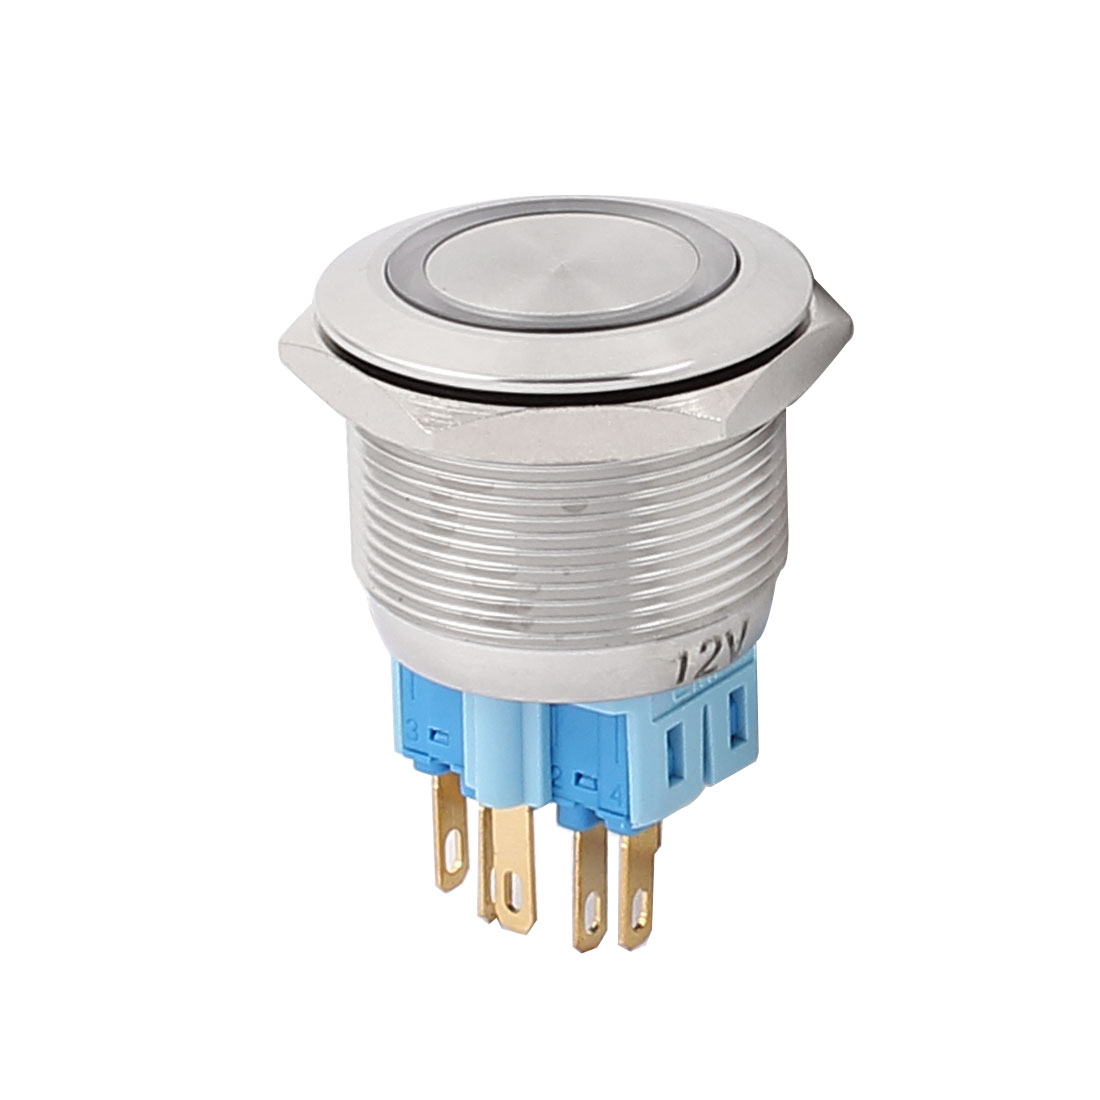 UXCELL 12V 25Mm Dia Thread White Led Angle Eyes Momentary Metal Pushbutton Switch<br><br>Aliexpress